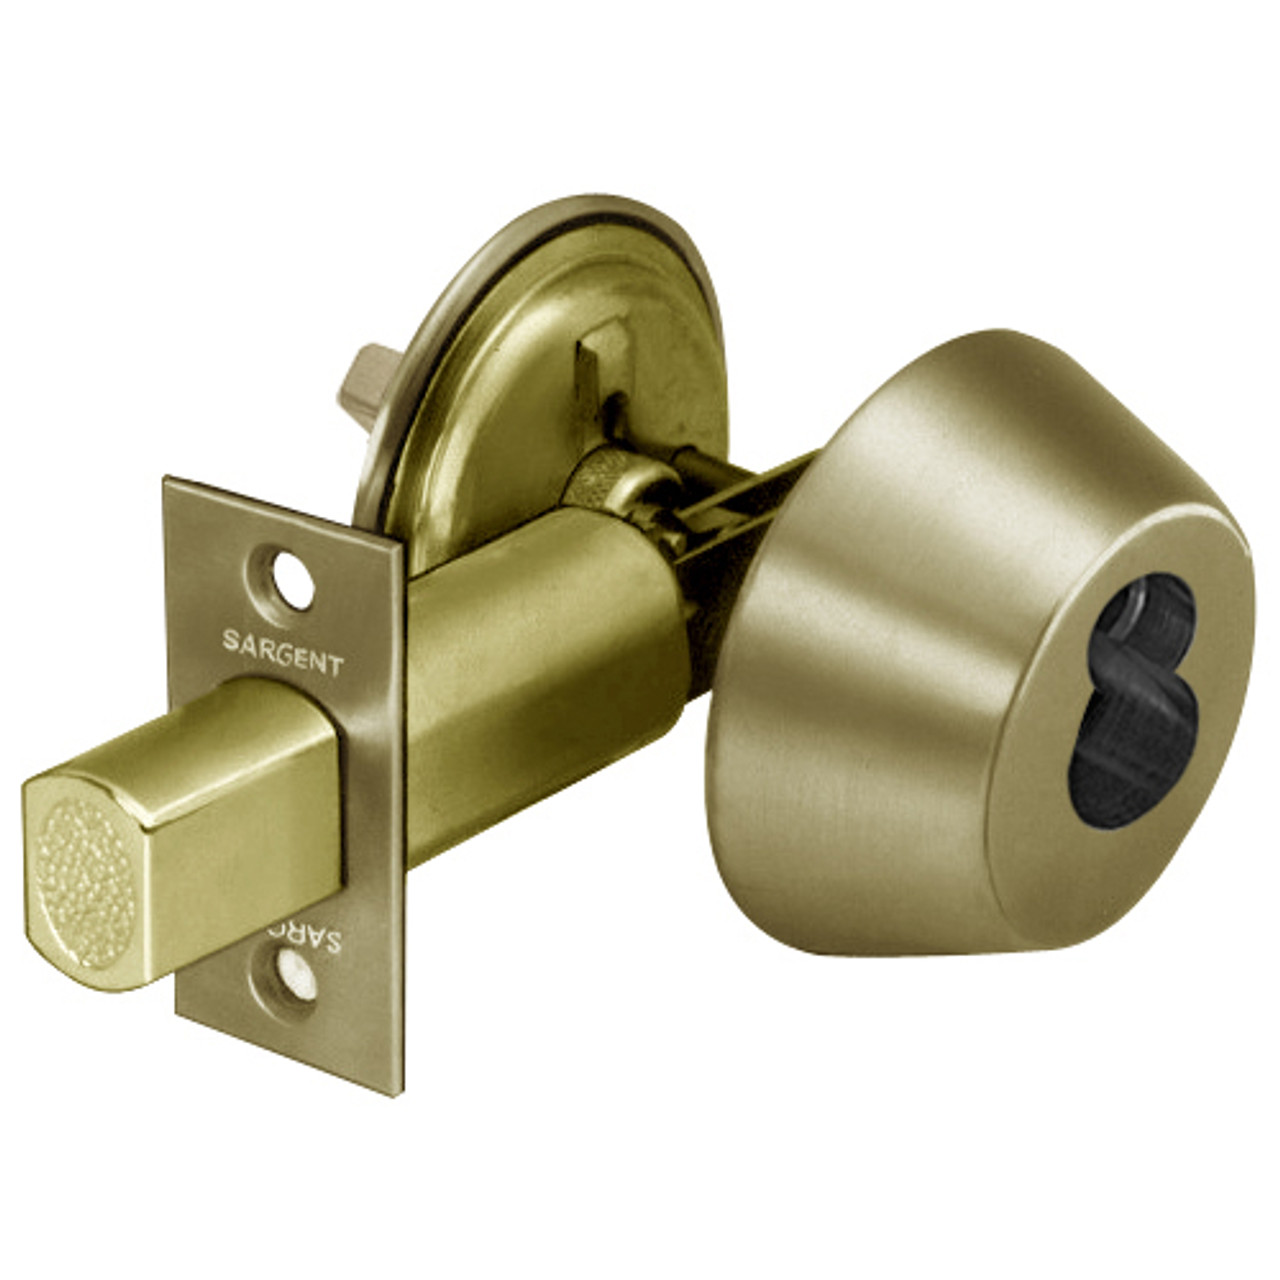 70 485 04 sargent 480 series single cylinder auxiliary deadbolt lock with thumbturn prepped for sfic in satin brass lock depot inc [ 1280 x 1280 Pixel ]